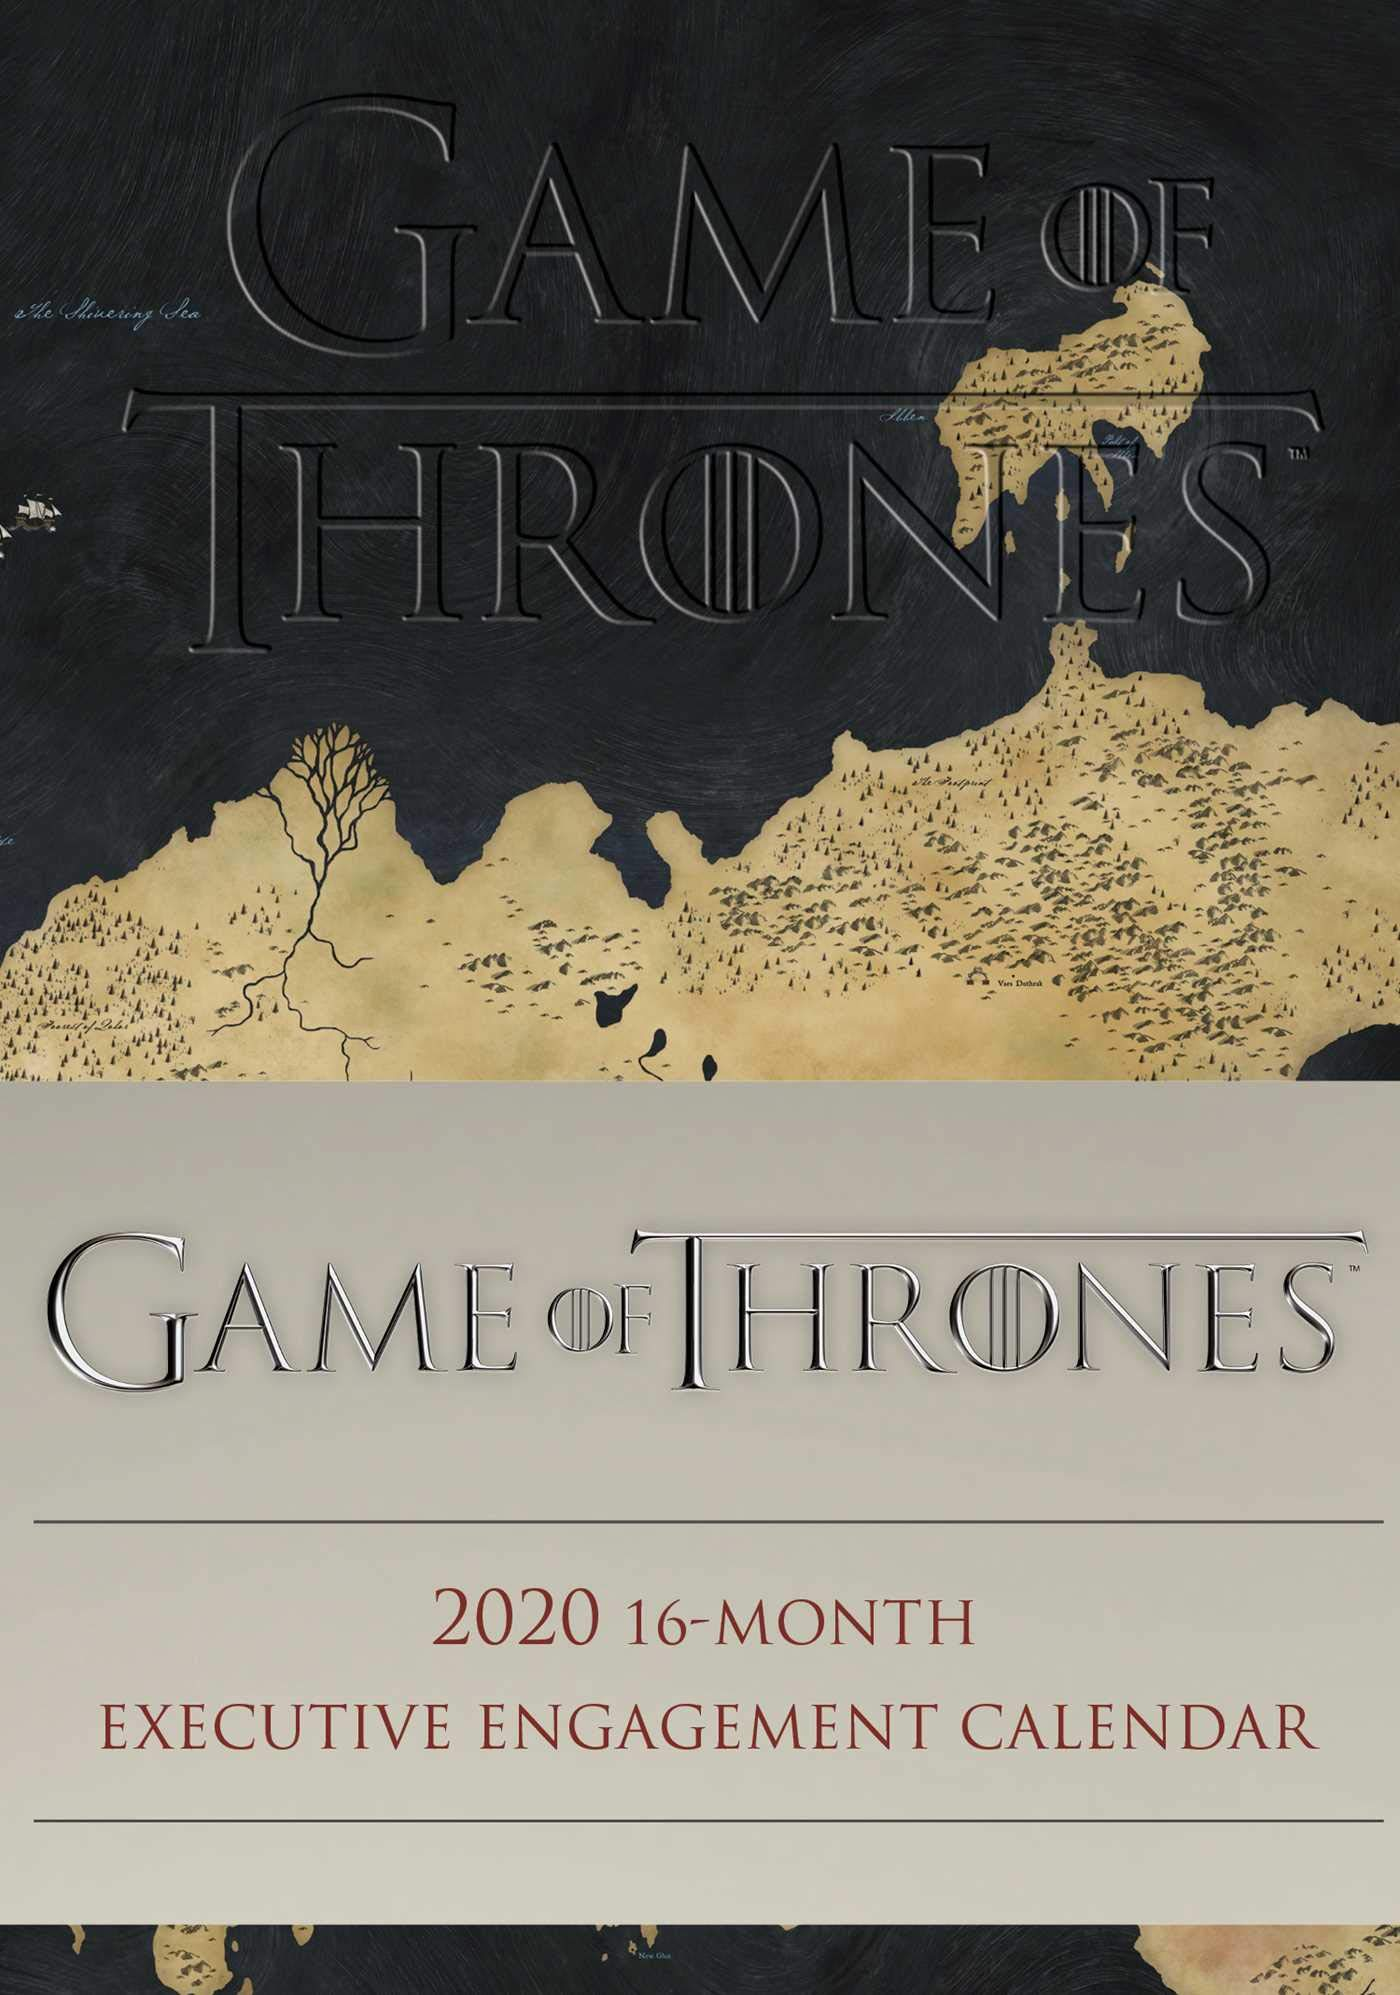 Game of Thrones 2020 16-Month Executive Engagement Calendar by Universe Publishing